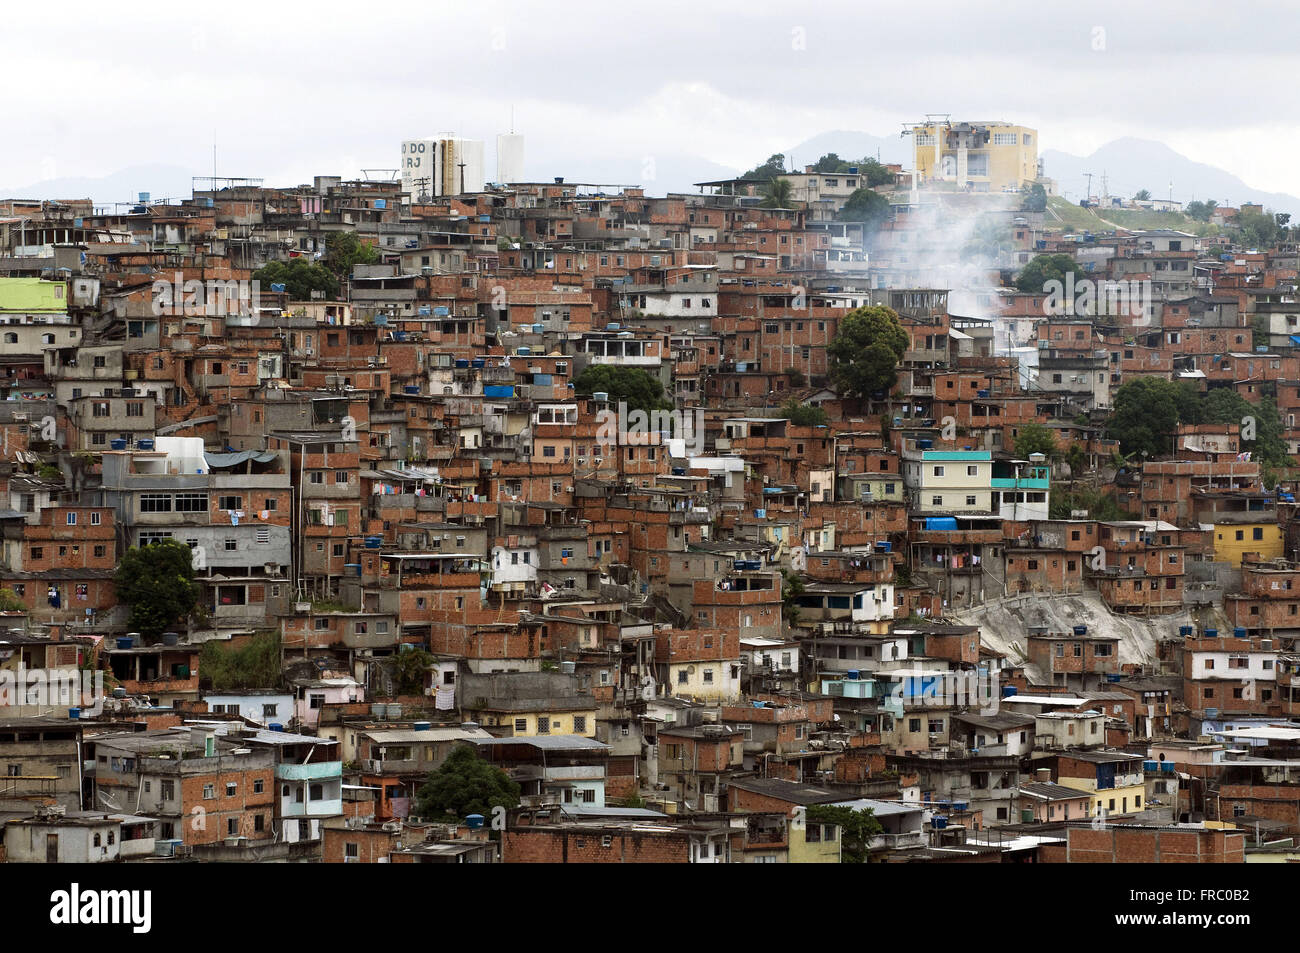 Morro do Alemao during the Growth Acceleration Program - PAC - - Stock Image